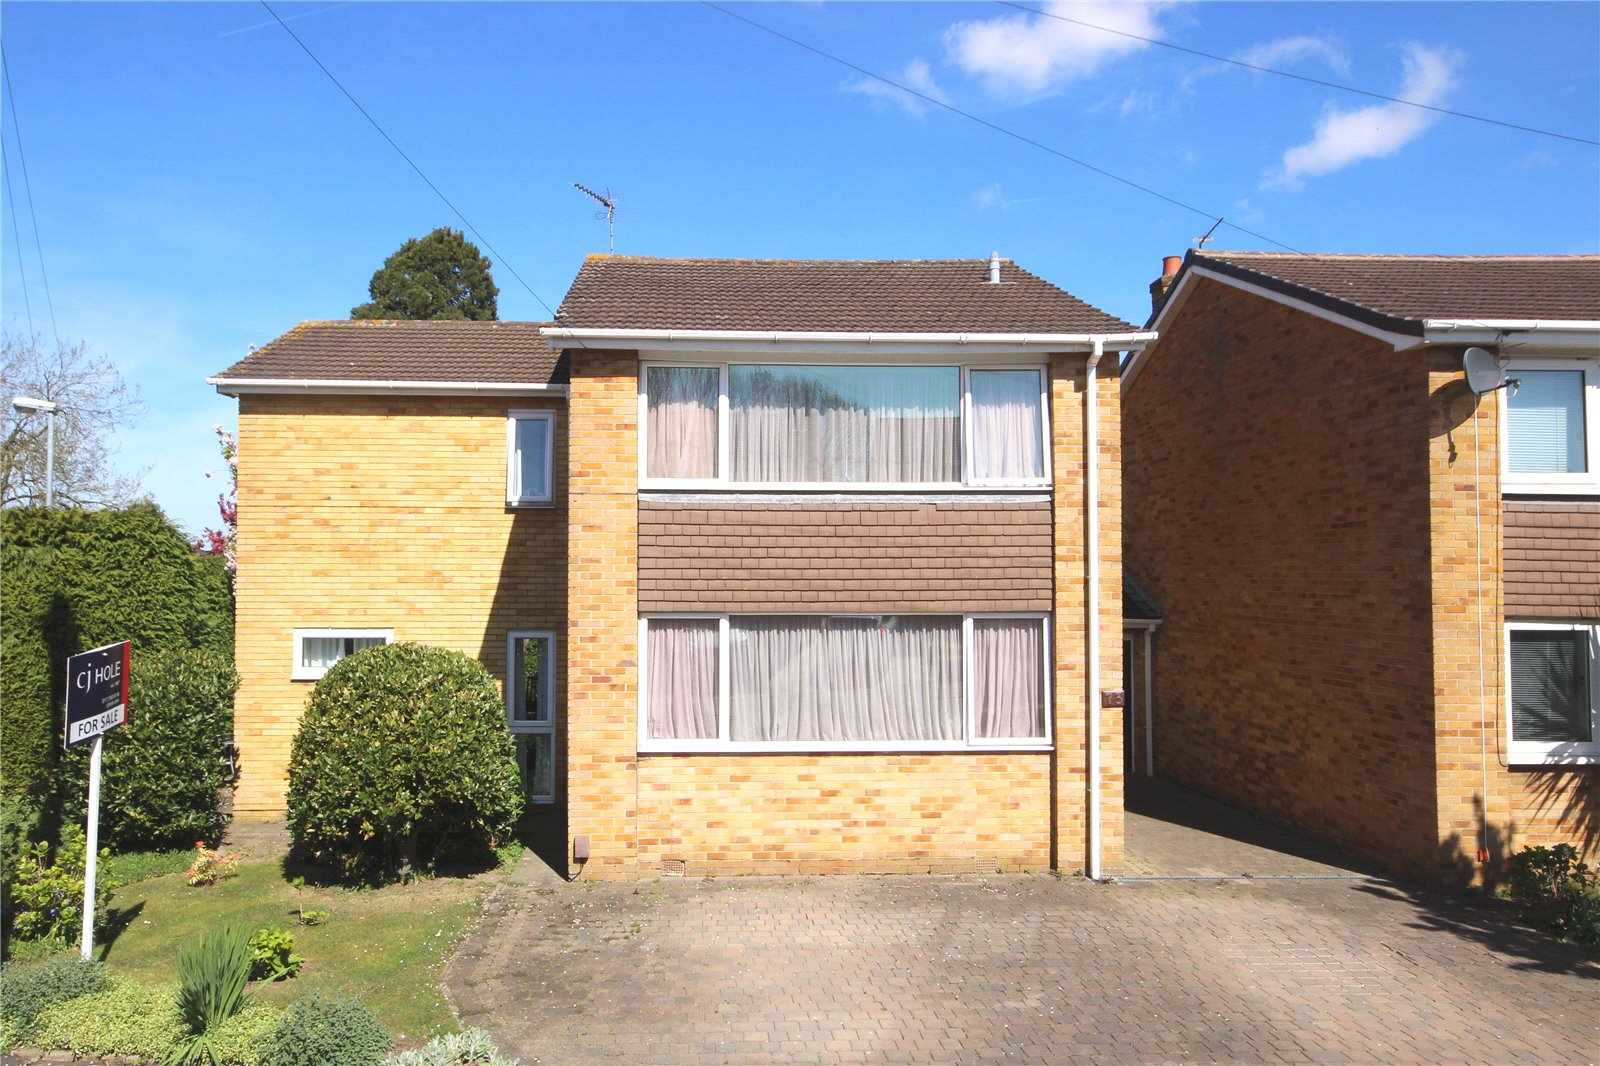 4 Bedrooms Detached House for sale in Charlton Mead Drive Brentry Bristol BS10